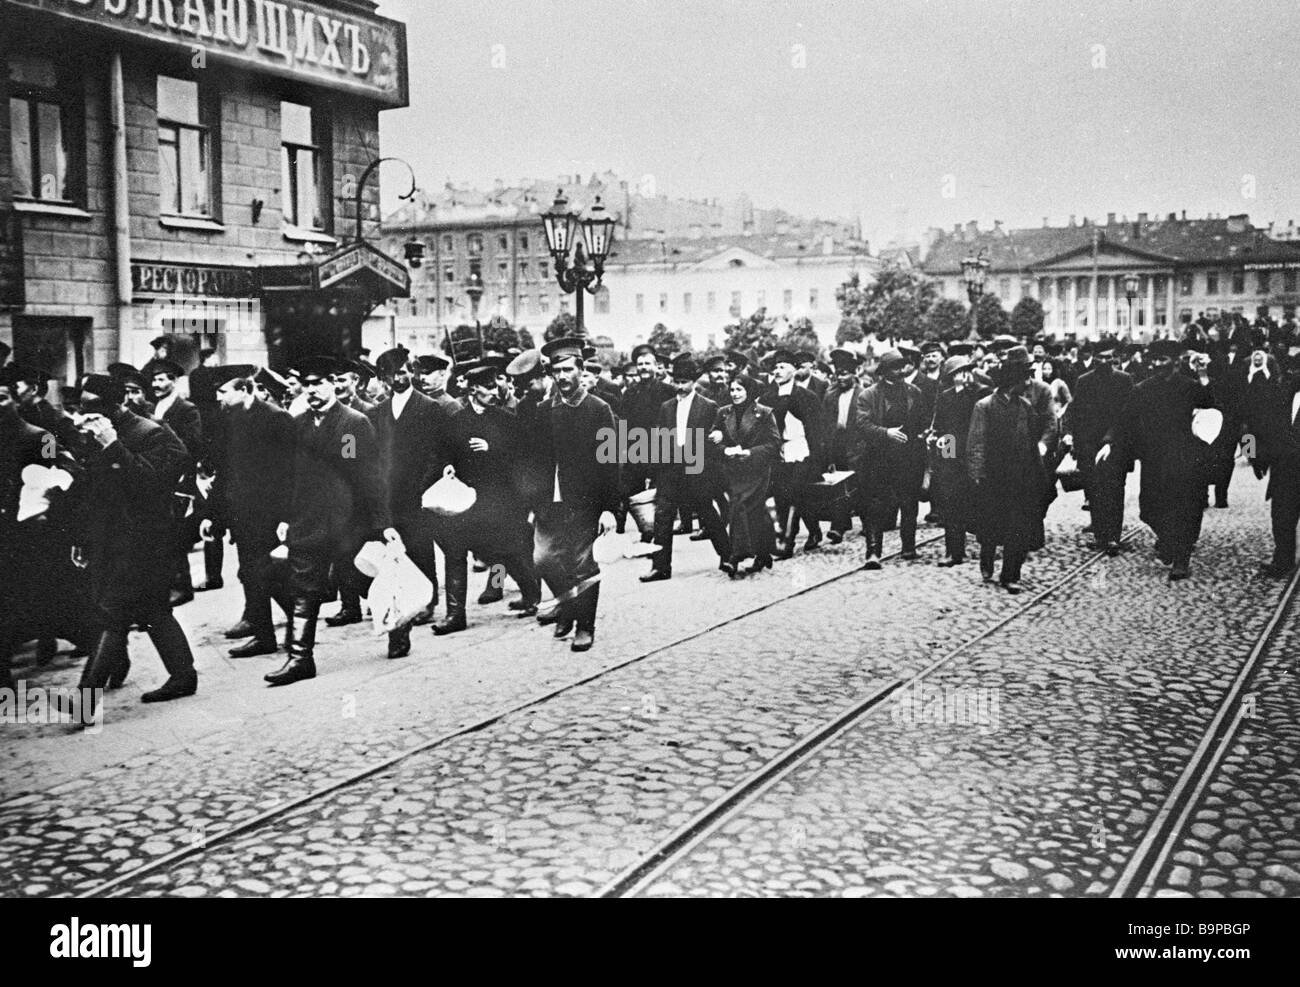 Mobilization of reservists during the first world war of 1914 1918 - Stock Image